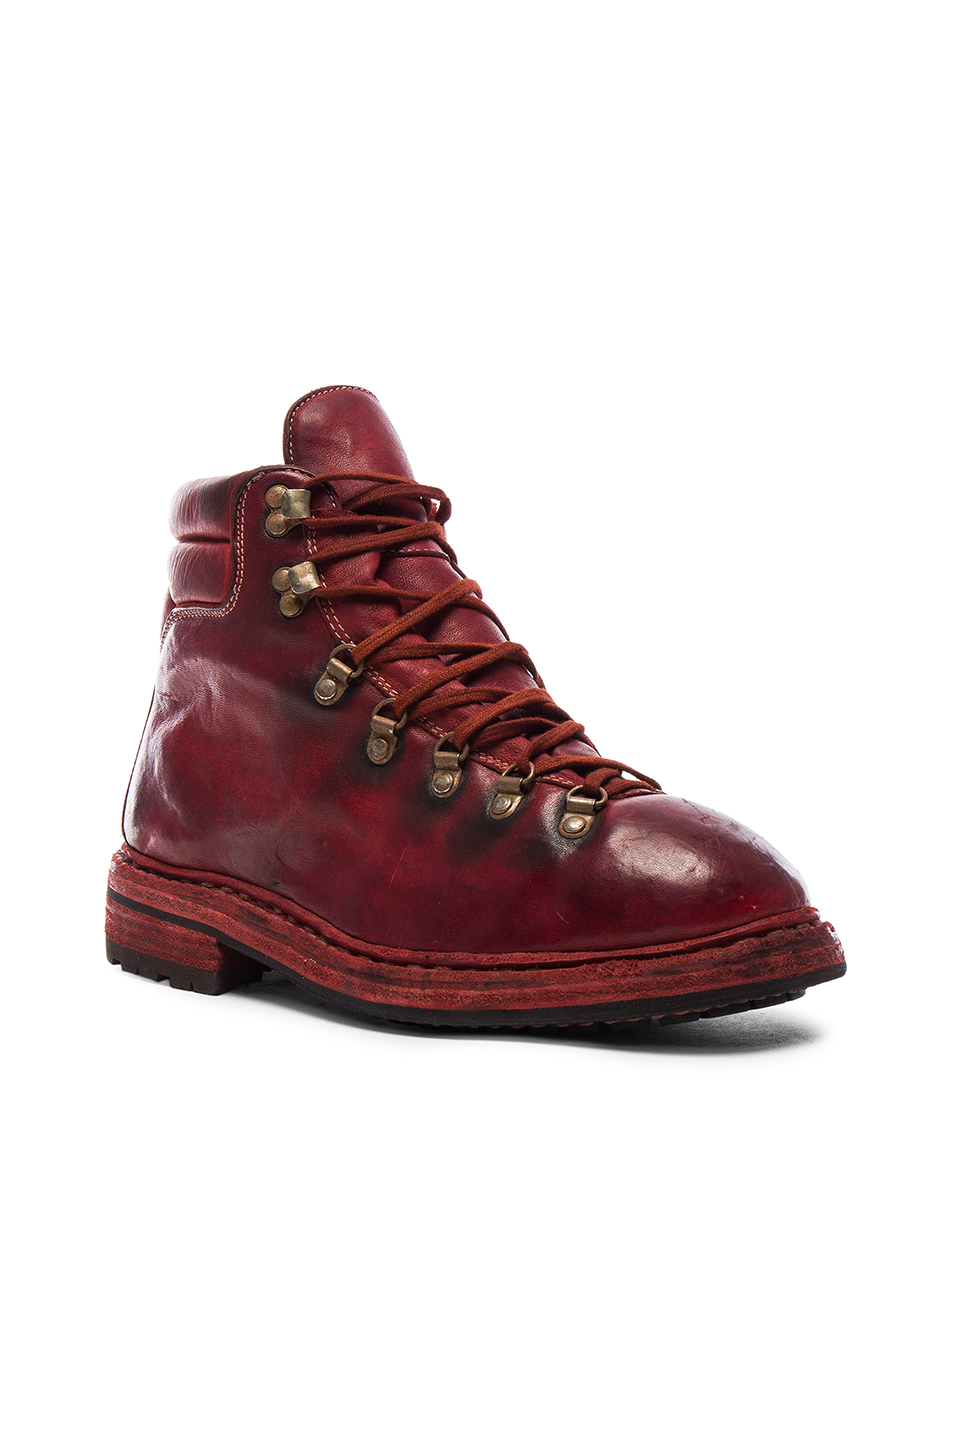 1ad7a5435 Buy Original Guidi Lace Up Leather Combat Boots at Indonesia | BOBOBOBO